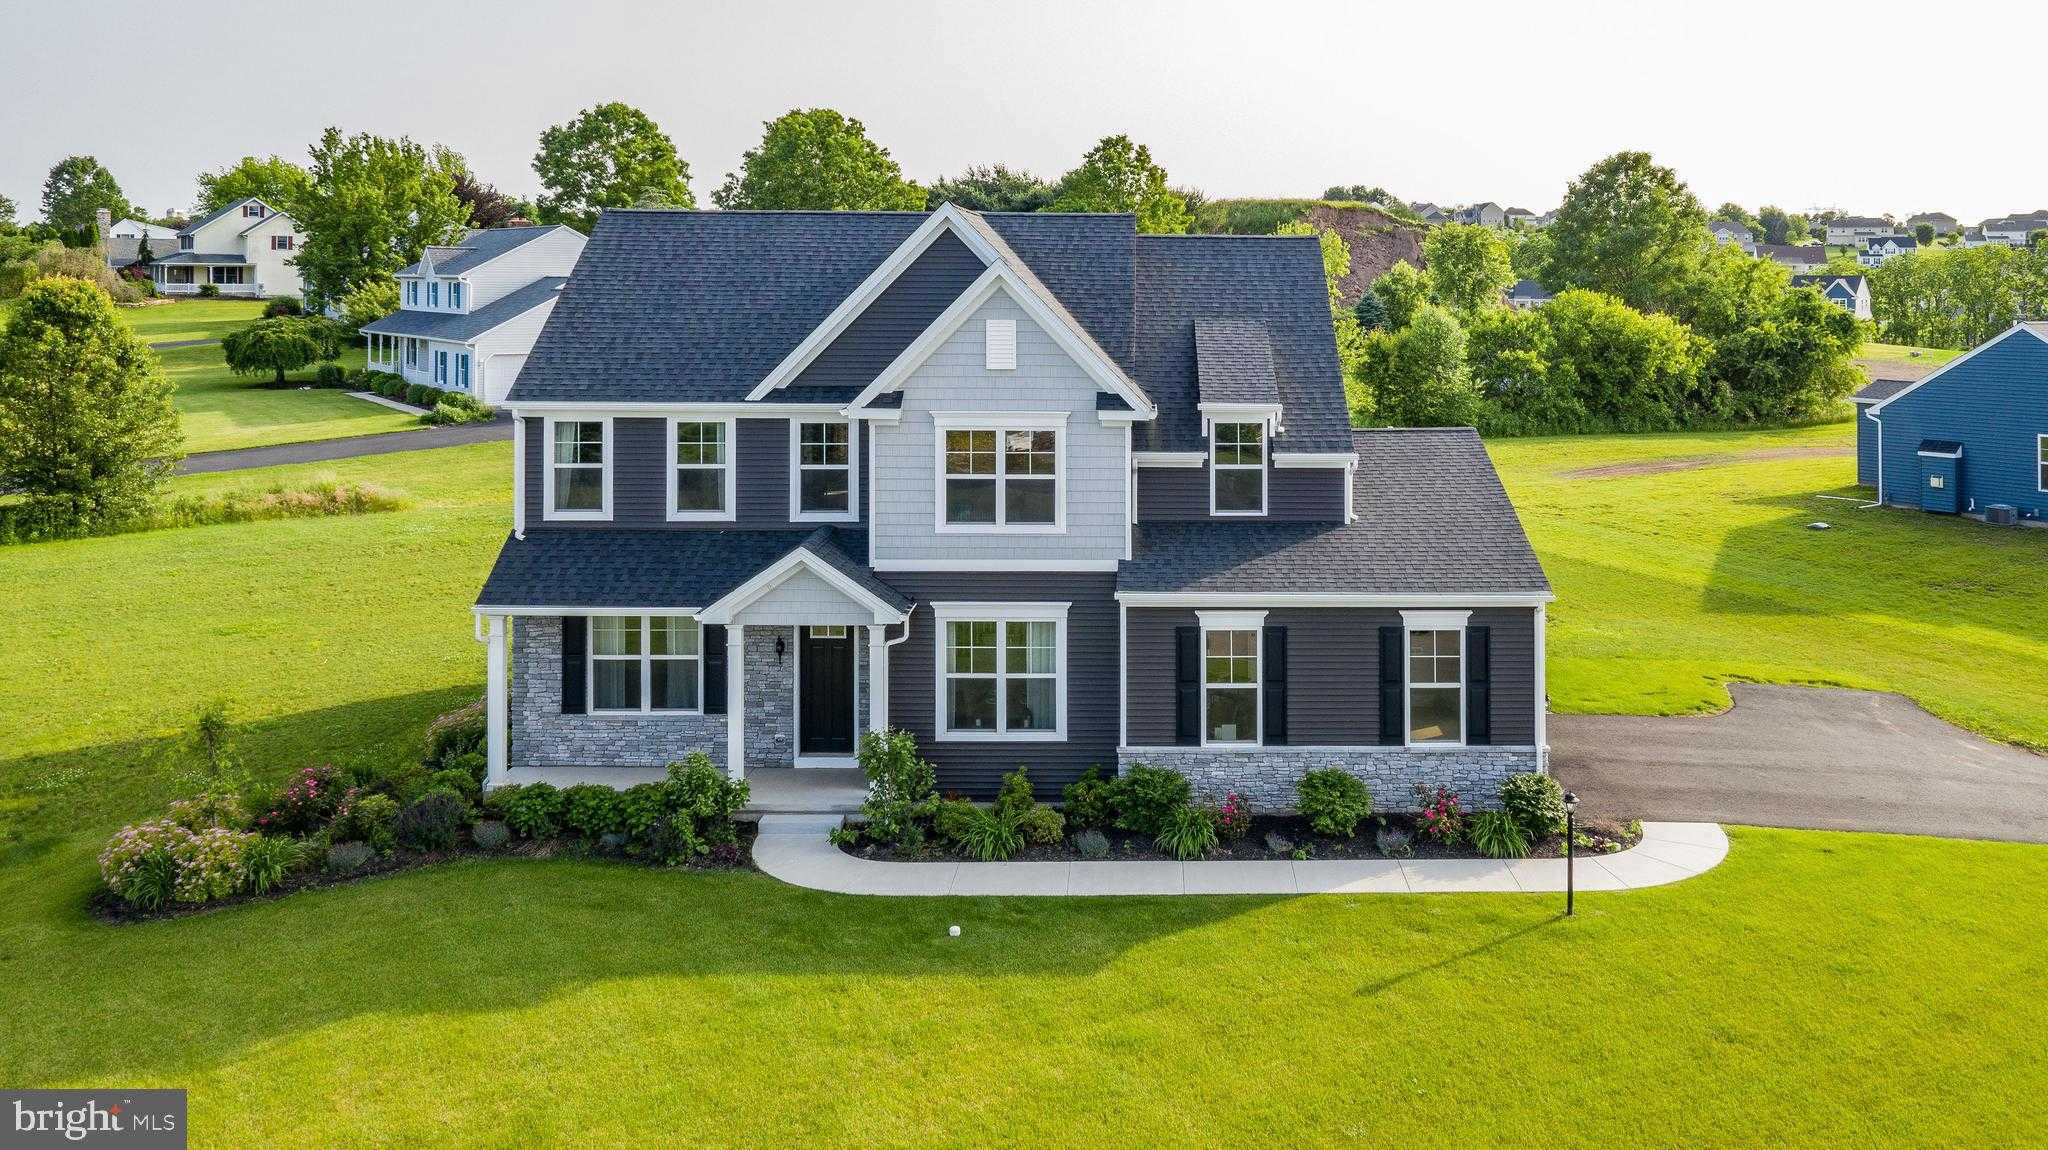 $448,900 - 4Br/4Ba -  for Sale in None Available, Barto